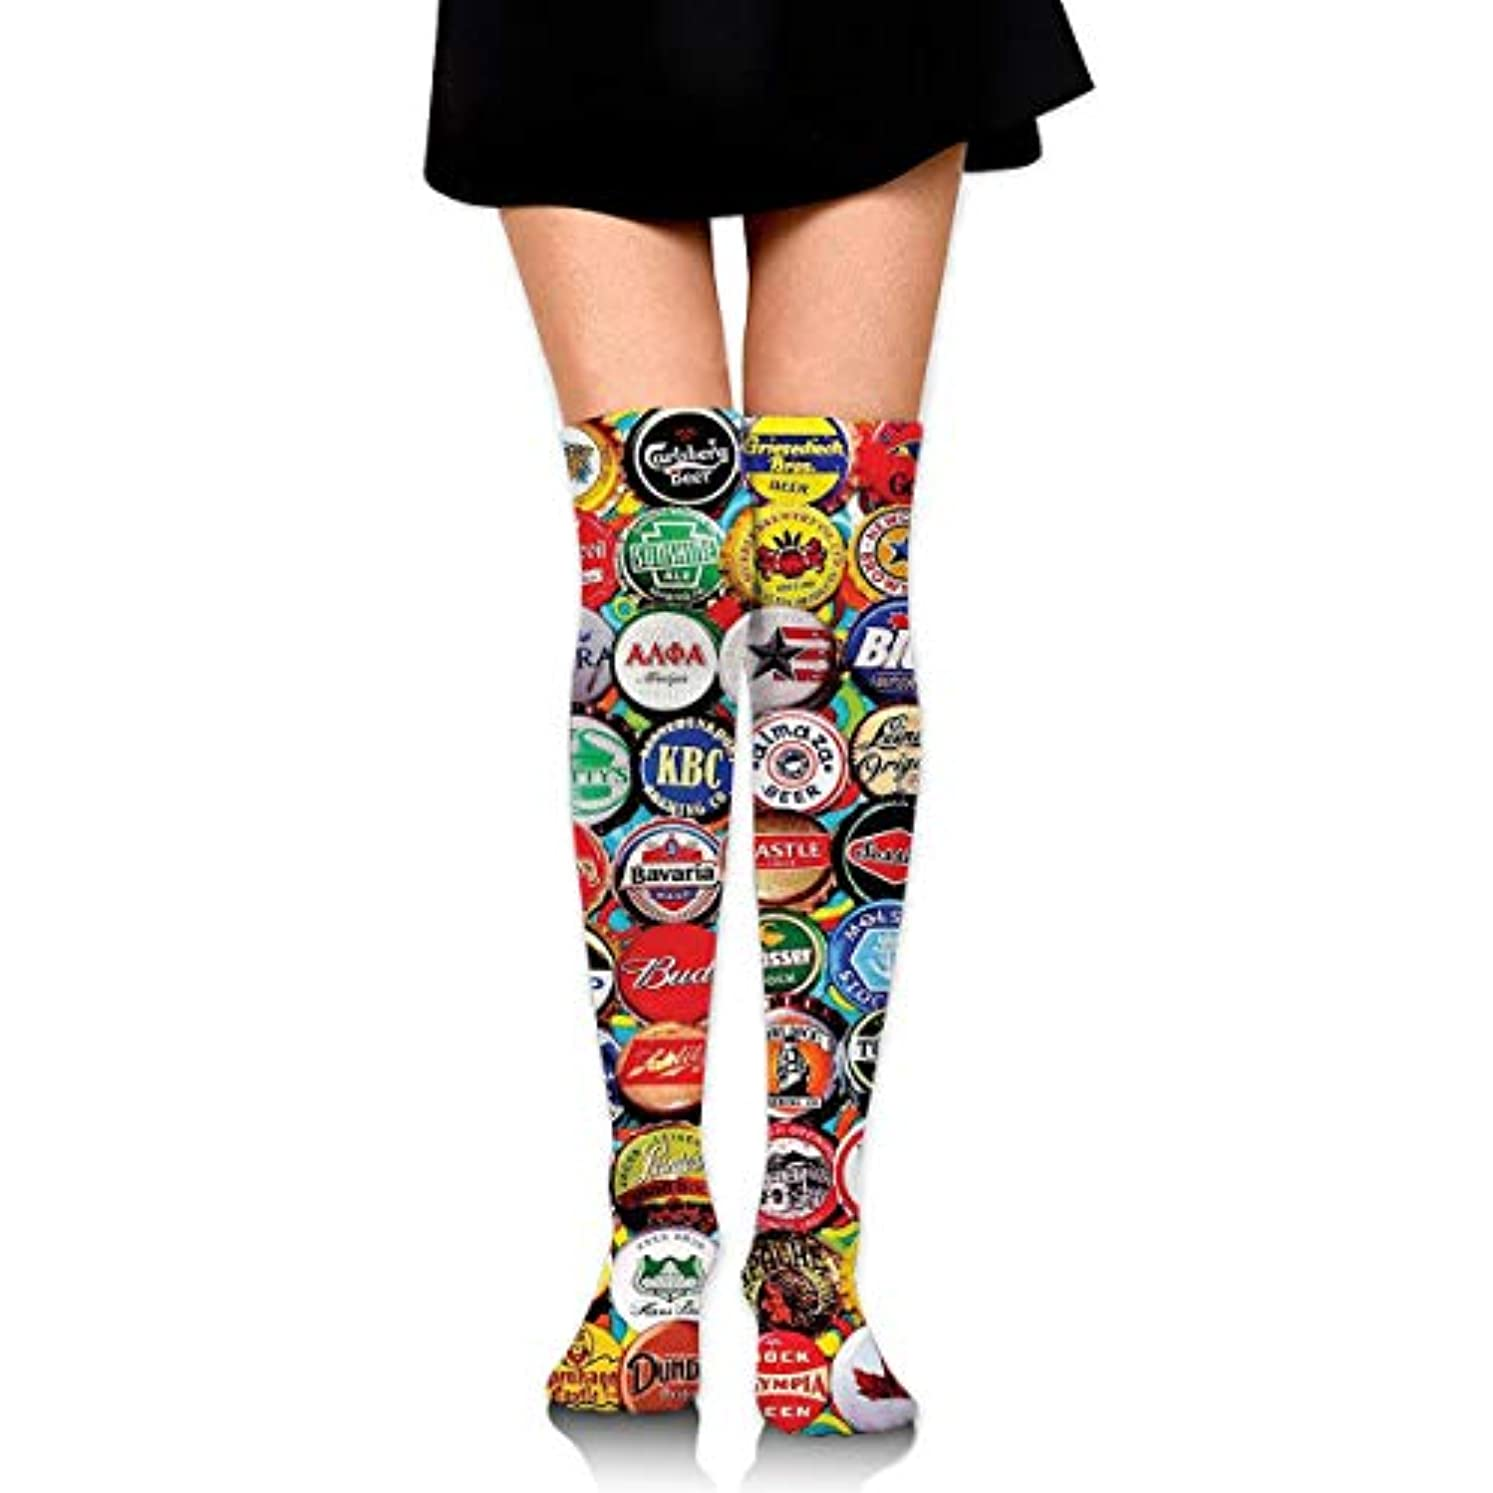 観光しなければならない上がるMKLOS 通気性 圧縮ソックス Breathable Extra Long Cotton Thigh High World Beer Bottle Caps Set Socks Over Exotic Psychedelic...